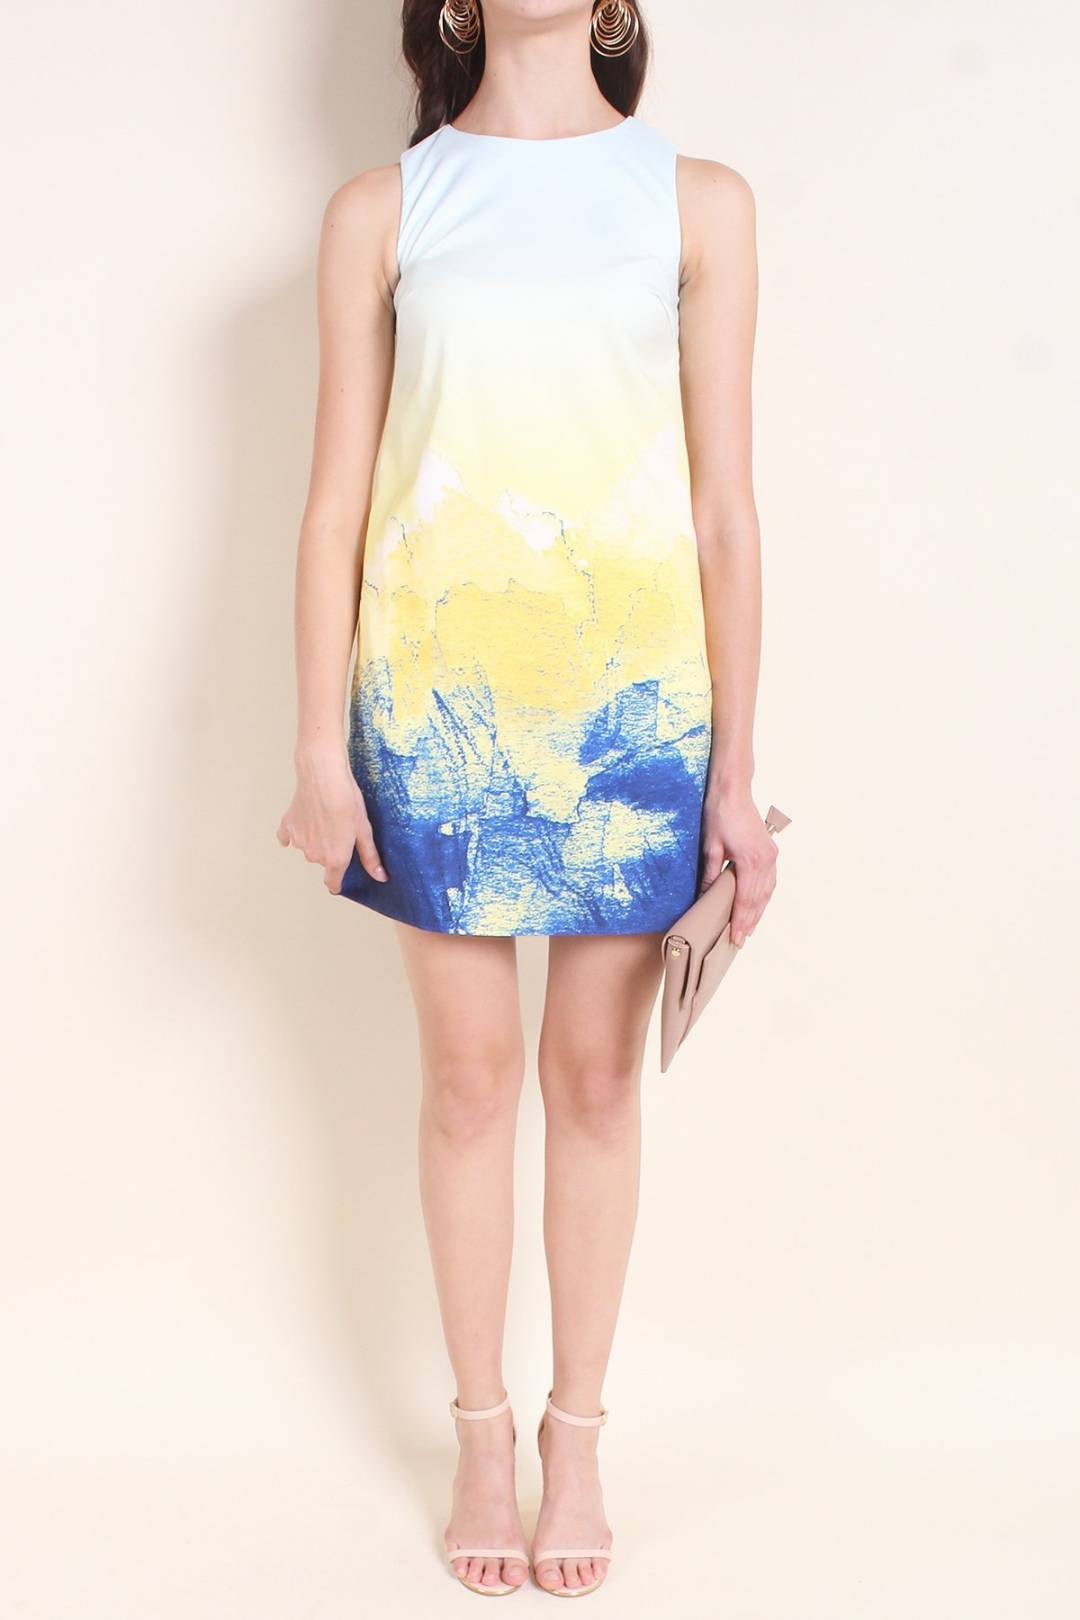 MADEBYNM CHELIA ABSTRACT SHIFT DRESS IN SUNSHINE [XS/S/M/L]